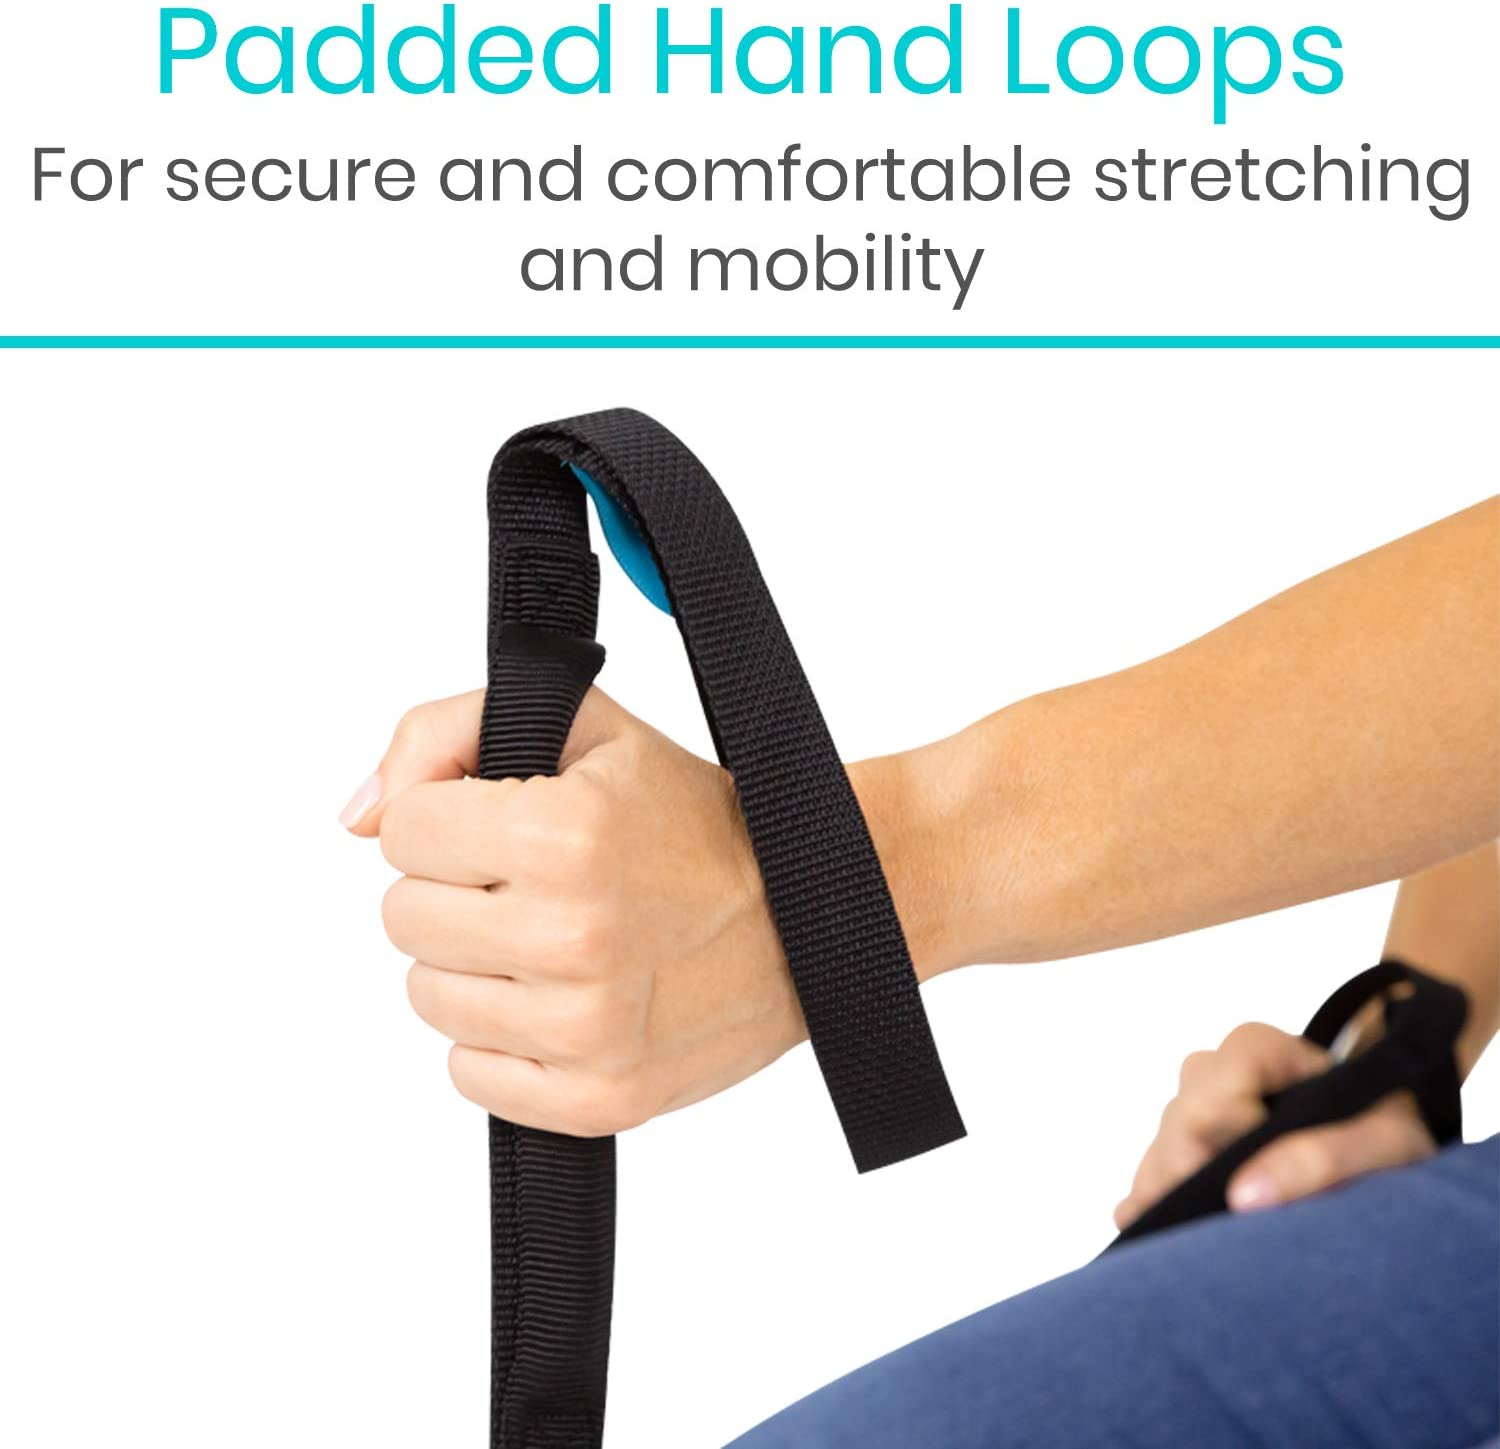 Vive Proflex Strap - Leg Lifter Assist with Nylon Webbing for Recovery, Stretching - Feet Loop with Hand Grips - Lift and Stretch Foot, Calf - Rigid for Elderly, Handicapped, Injury, Car and Bed: Health & Personal Care